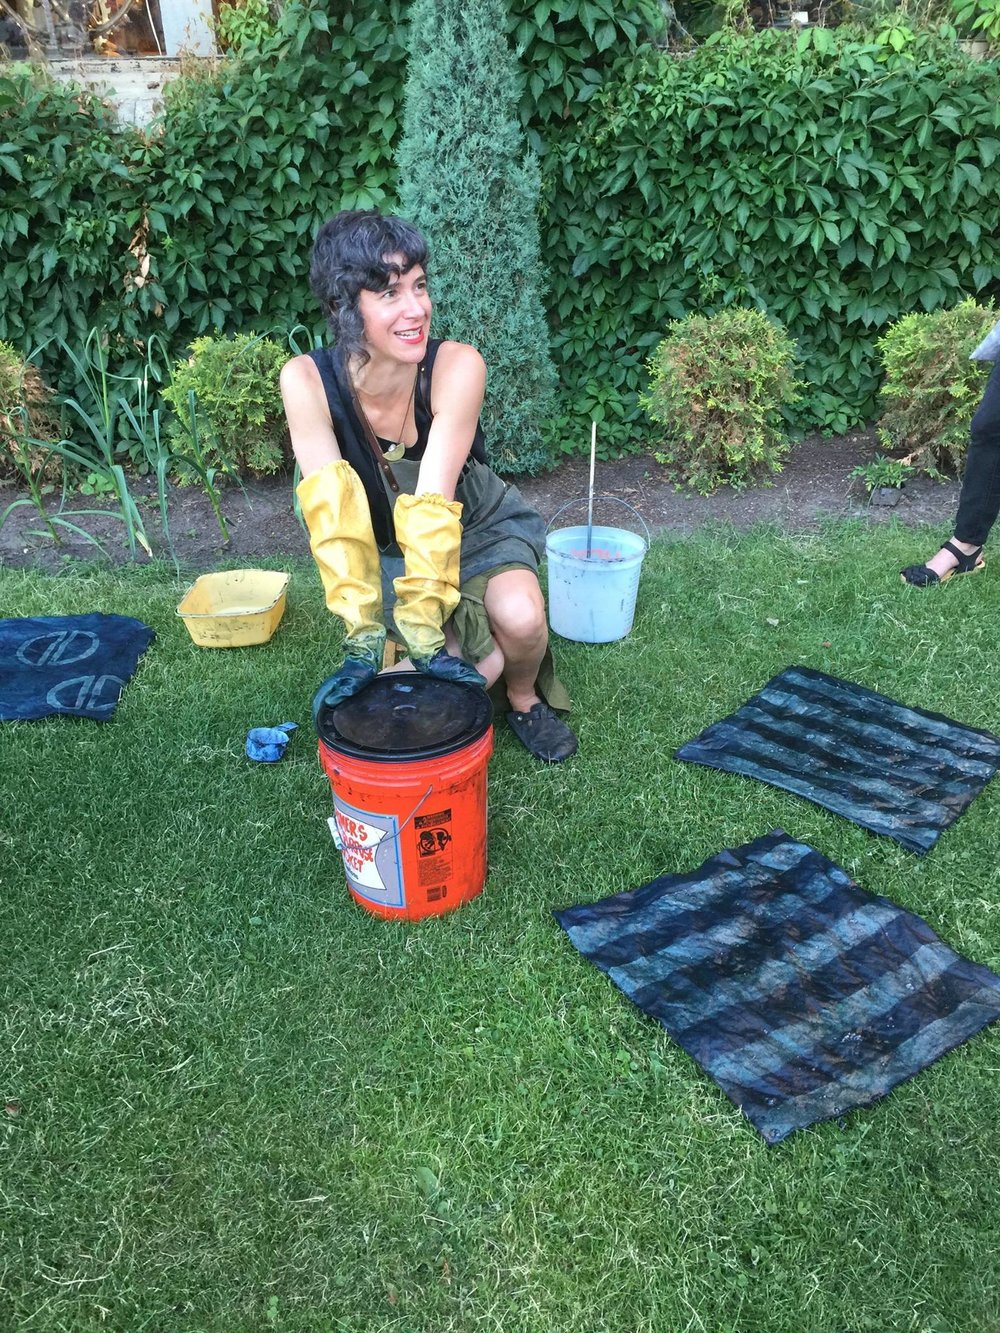 Annabella Sardelis of INDIGO & SNOW teaching an Indigo Dyeing Class at Khazana